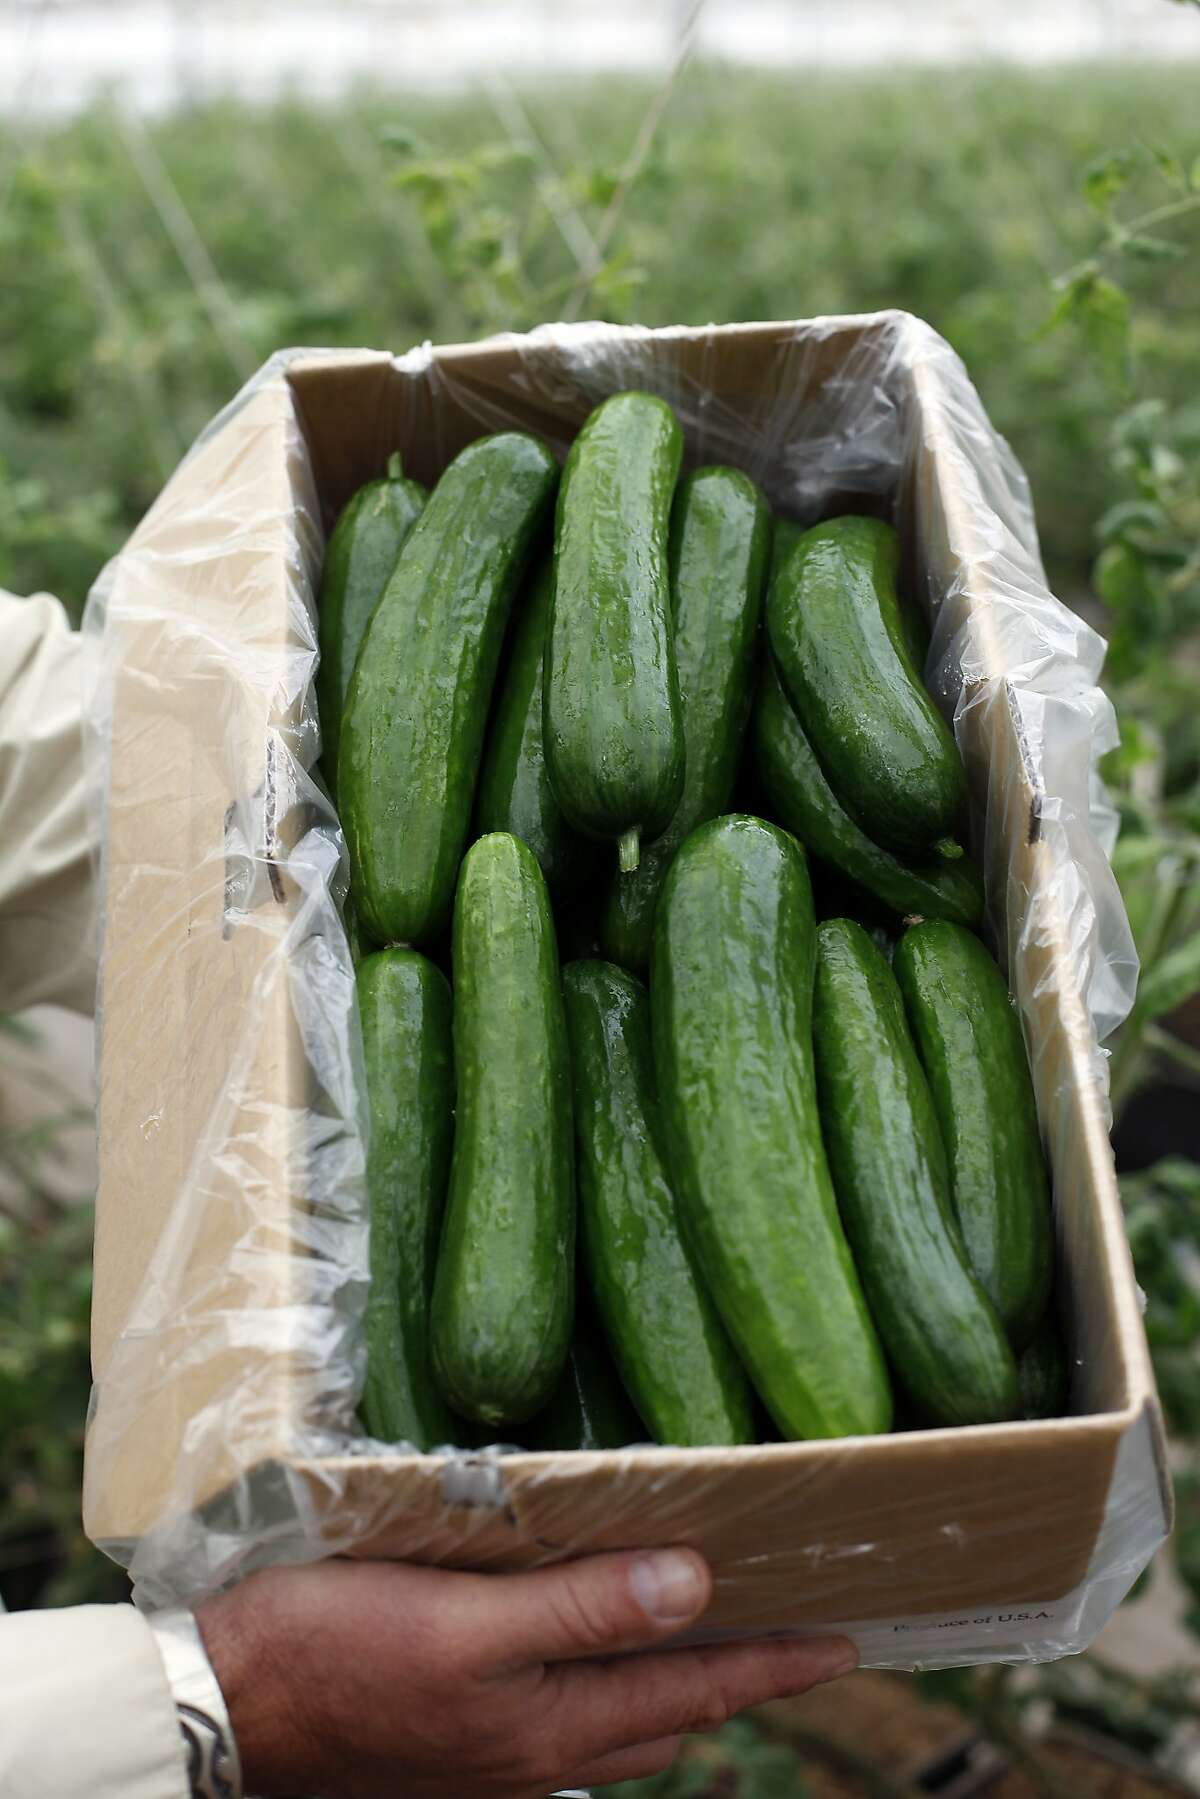 Persian and Japanese cucumbers grown at Viridis Aquaponics in Watsonville, Calif., on Friday, September 5, 2014.